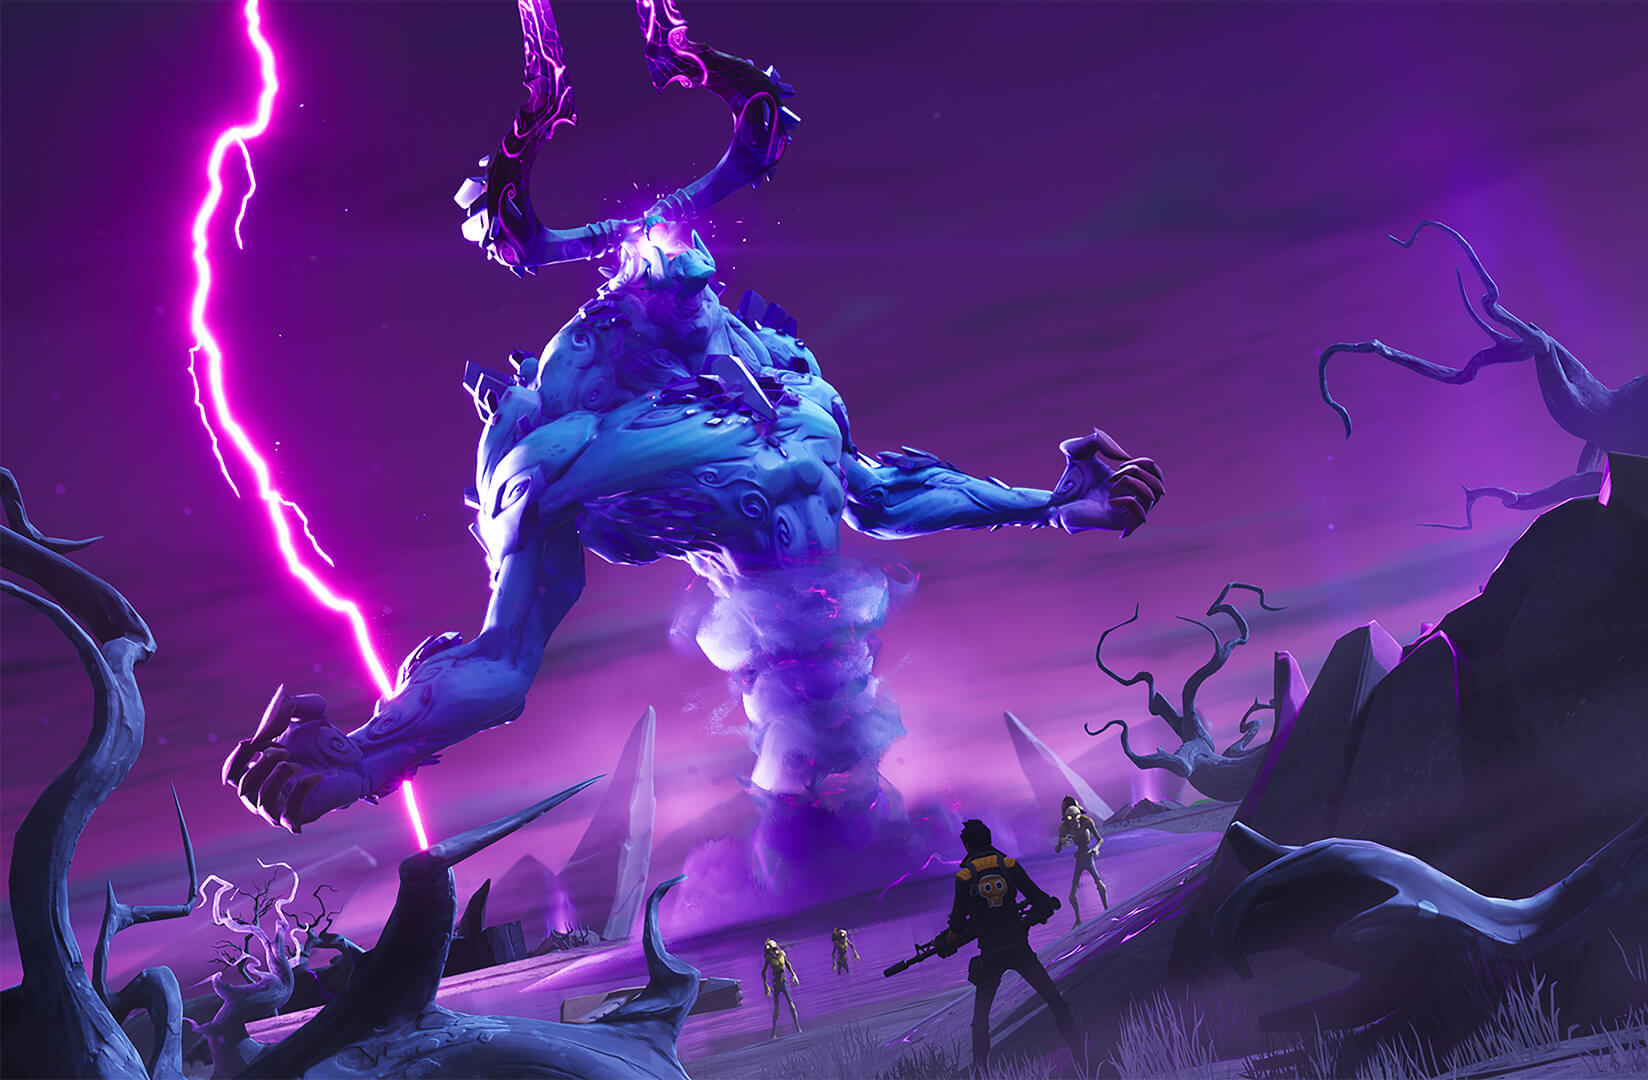 Fortnite: Save the World's Storm King stands in the background as players rush toward the giant boss